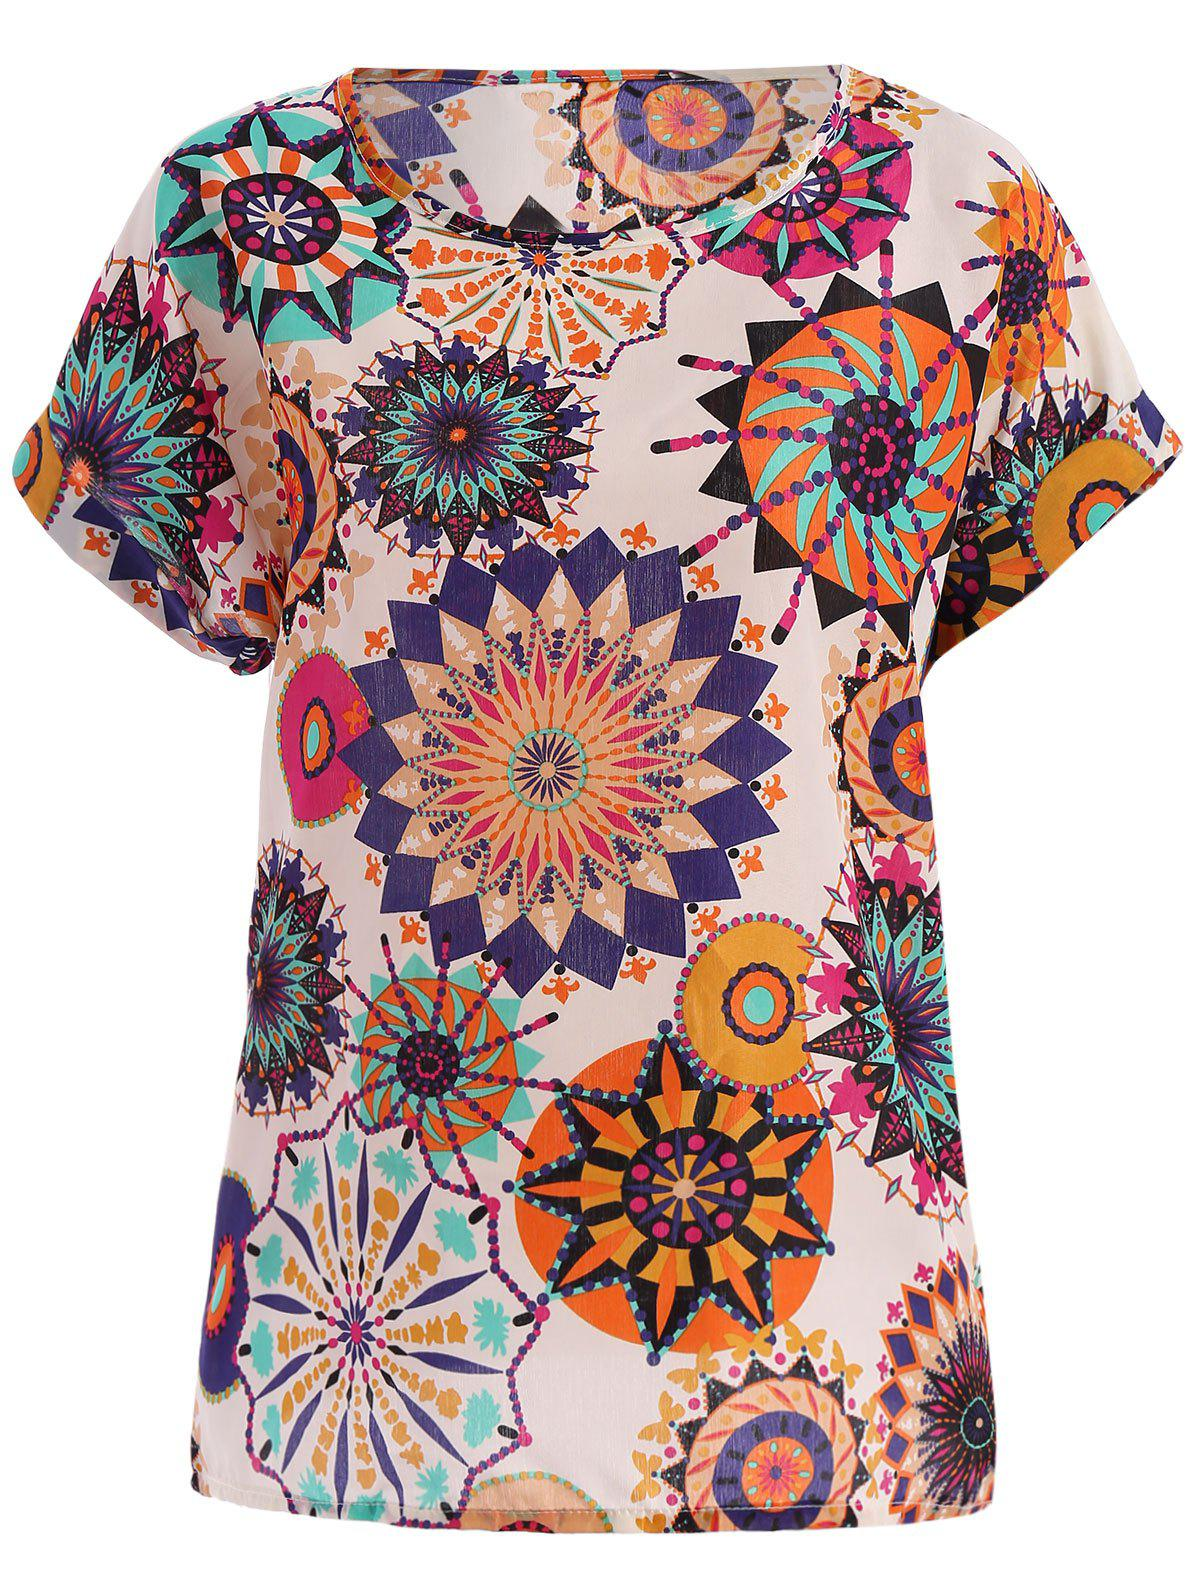 Tribal Bohemian Women's Plus Size Scoop Neck Floral Print Blouse - WHITE 2XL